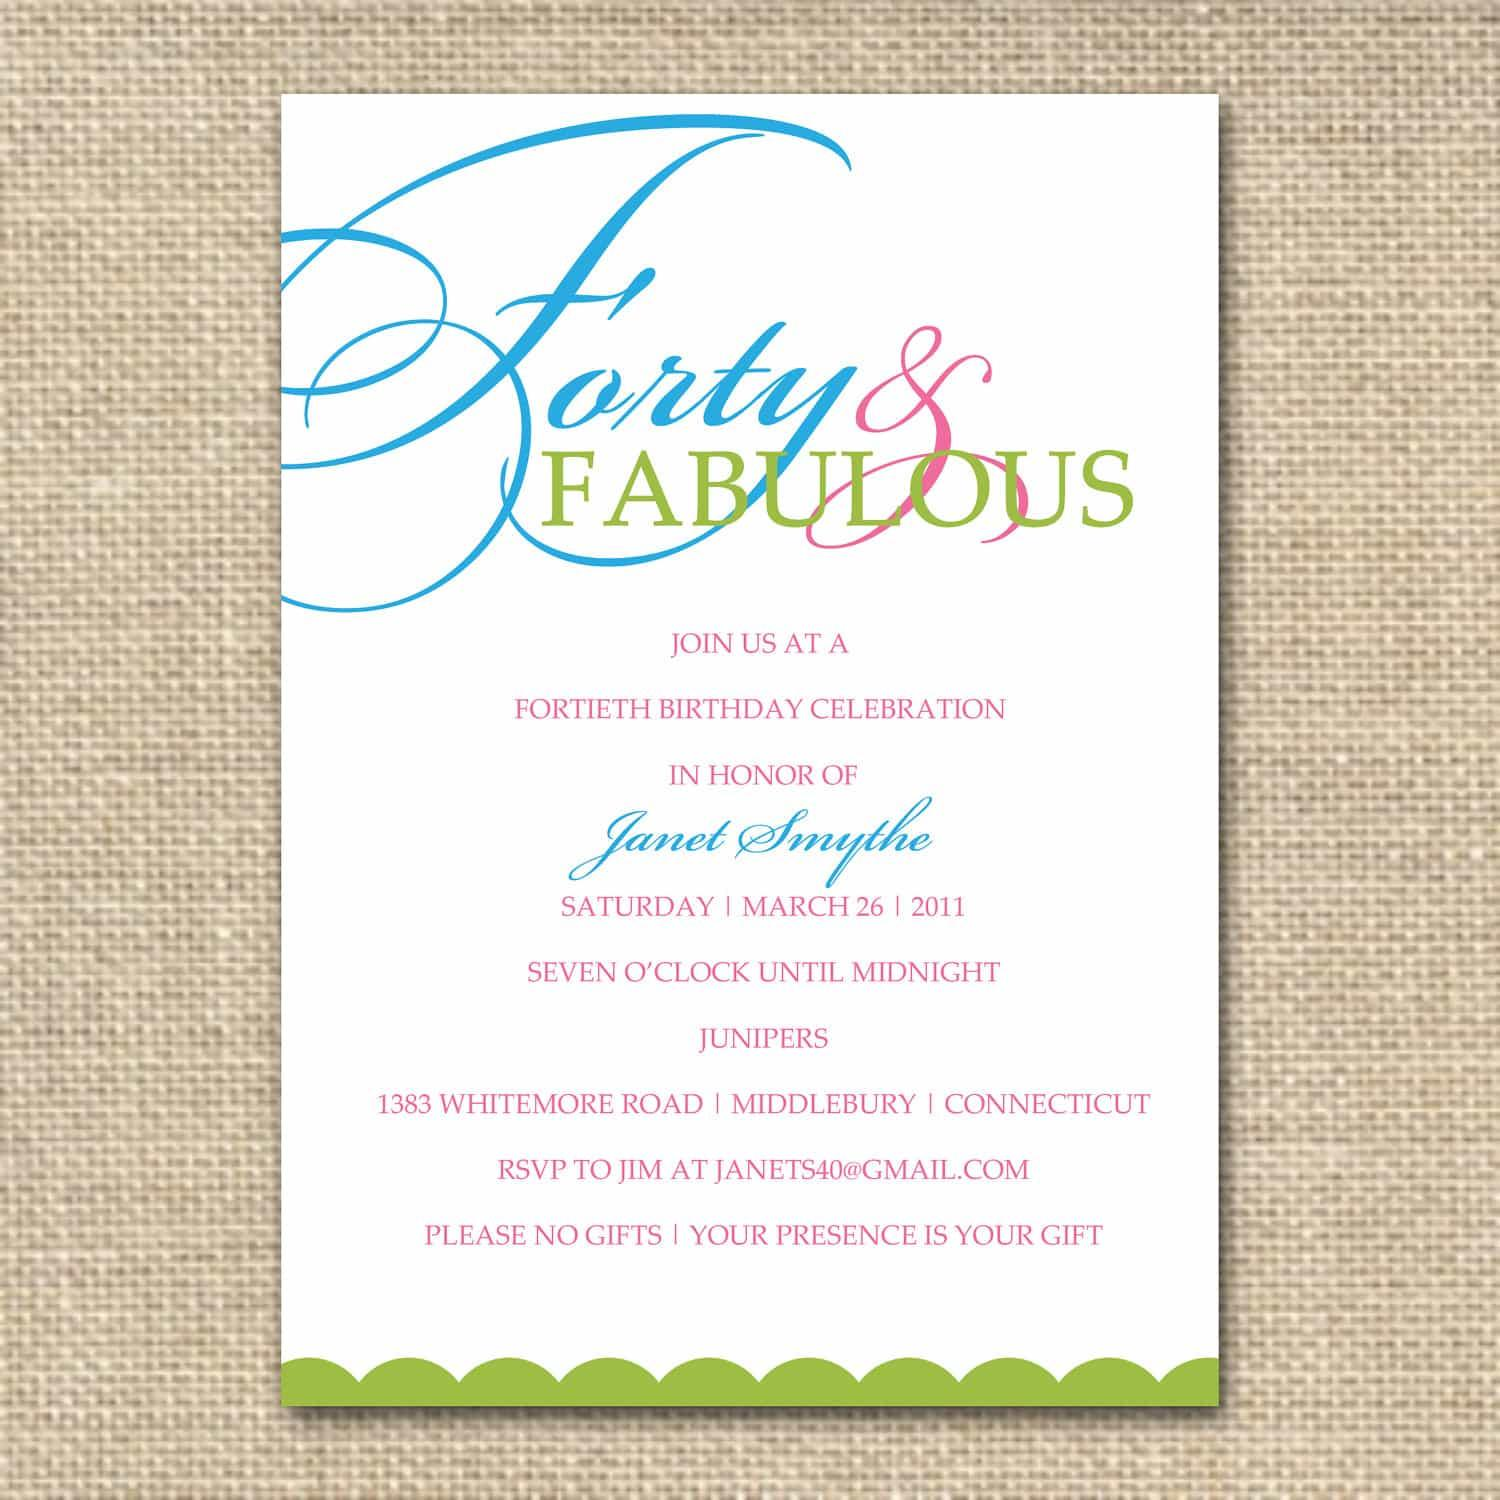 Birthday Party Invitation Templates Pdf